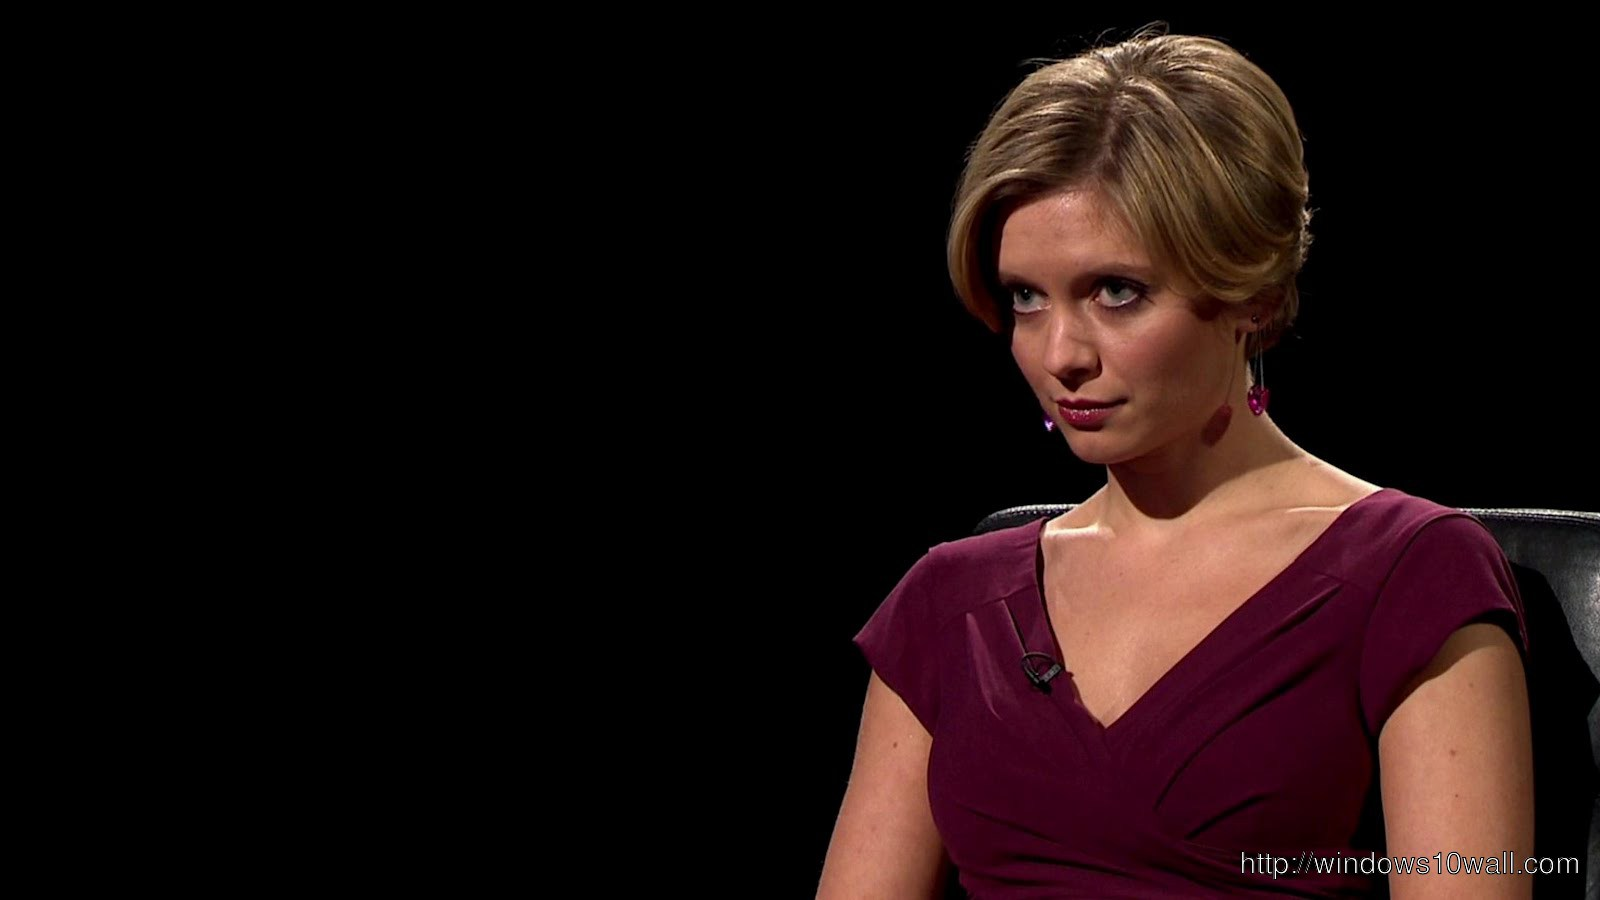 Rachel Riley in Black Background Wallpaper